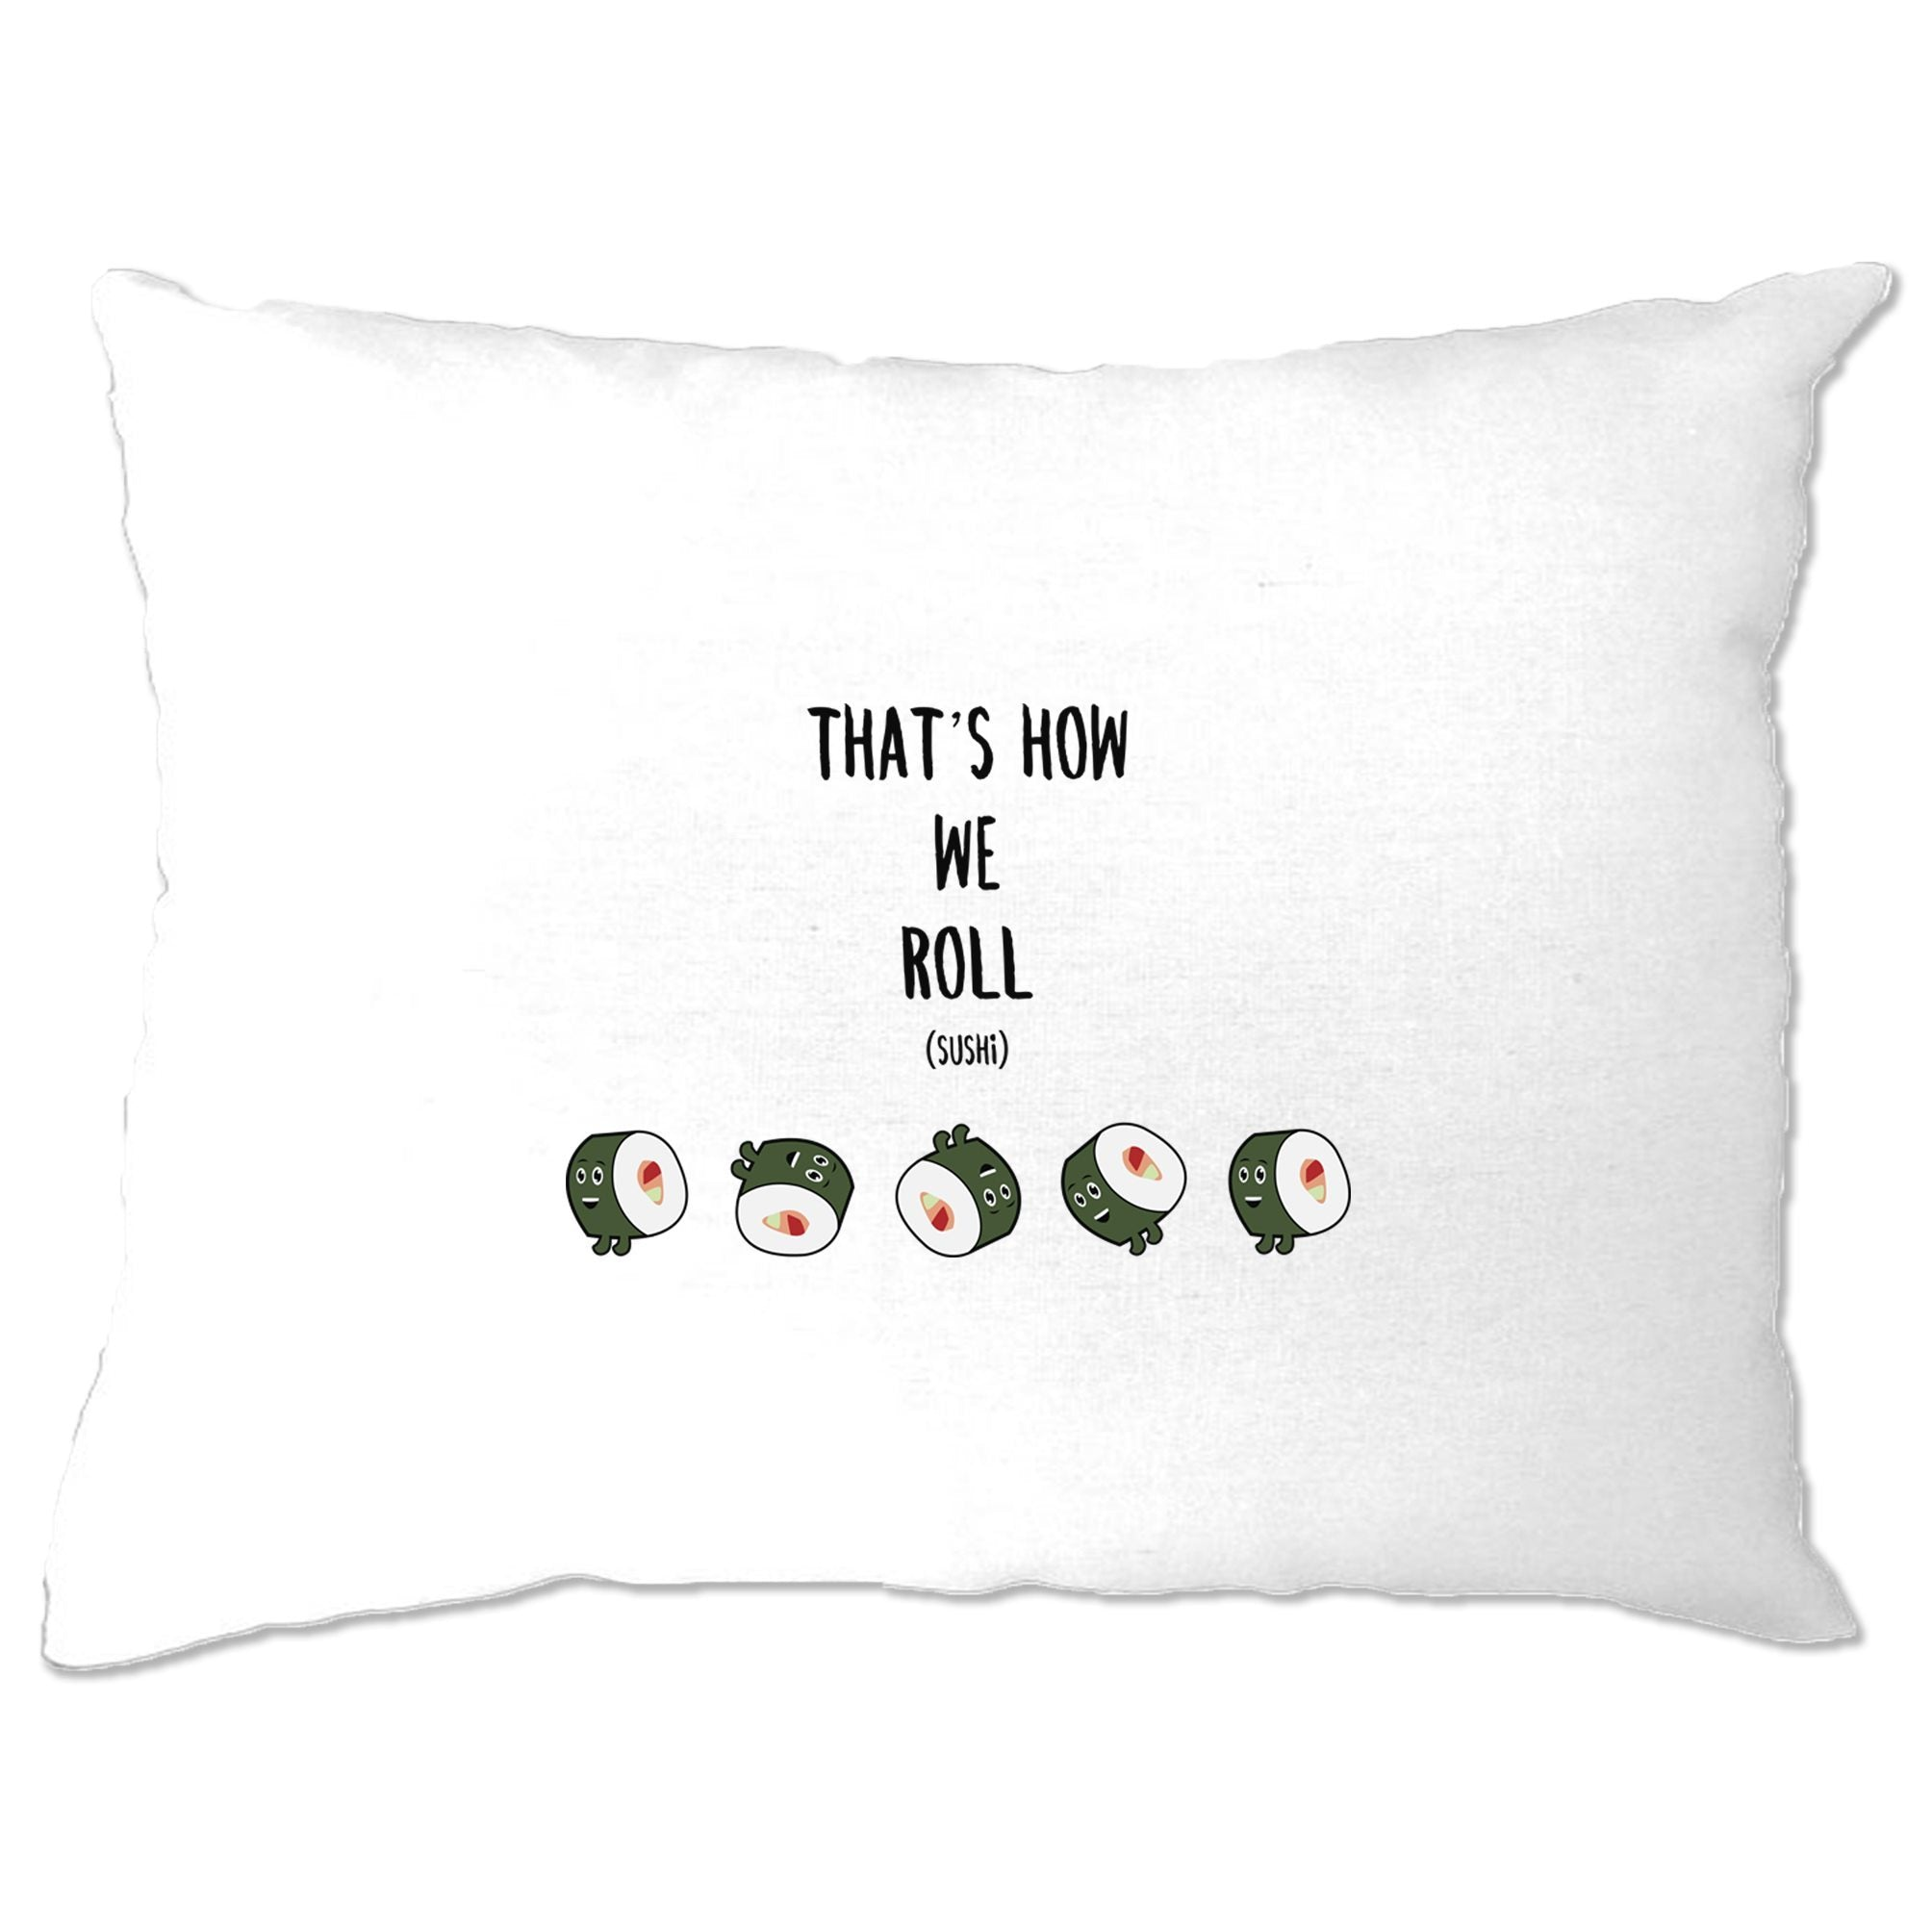 Joke Food Pillow Case That's How We Sushi Roll Pun Slogan